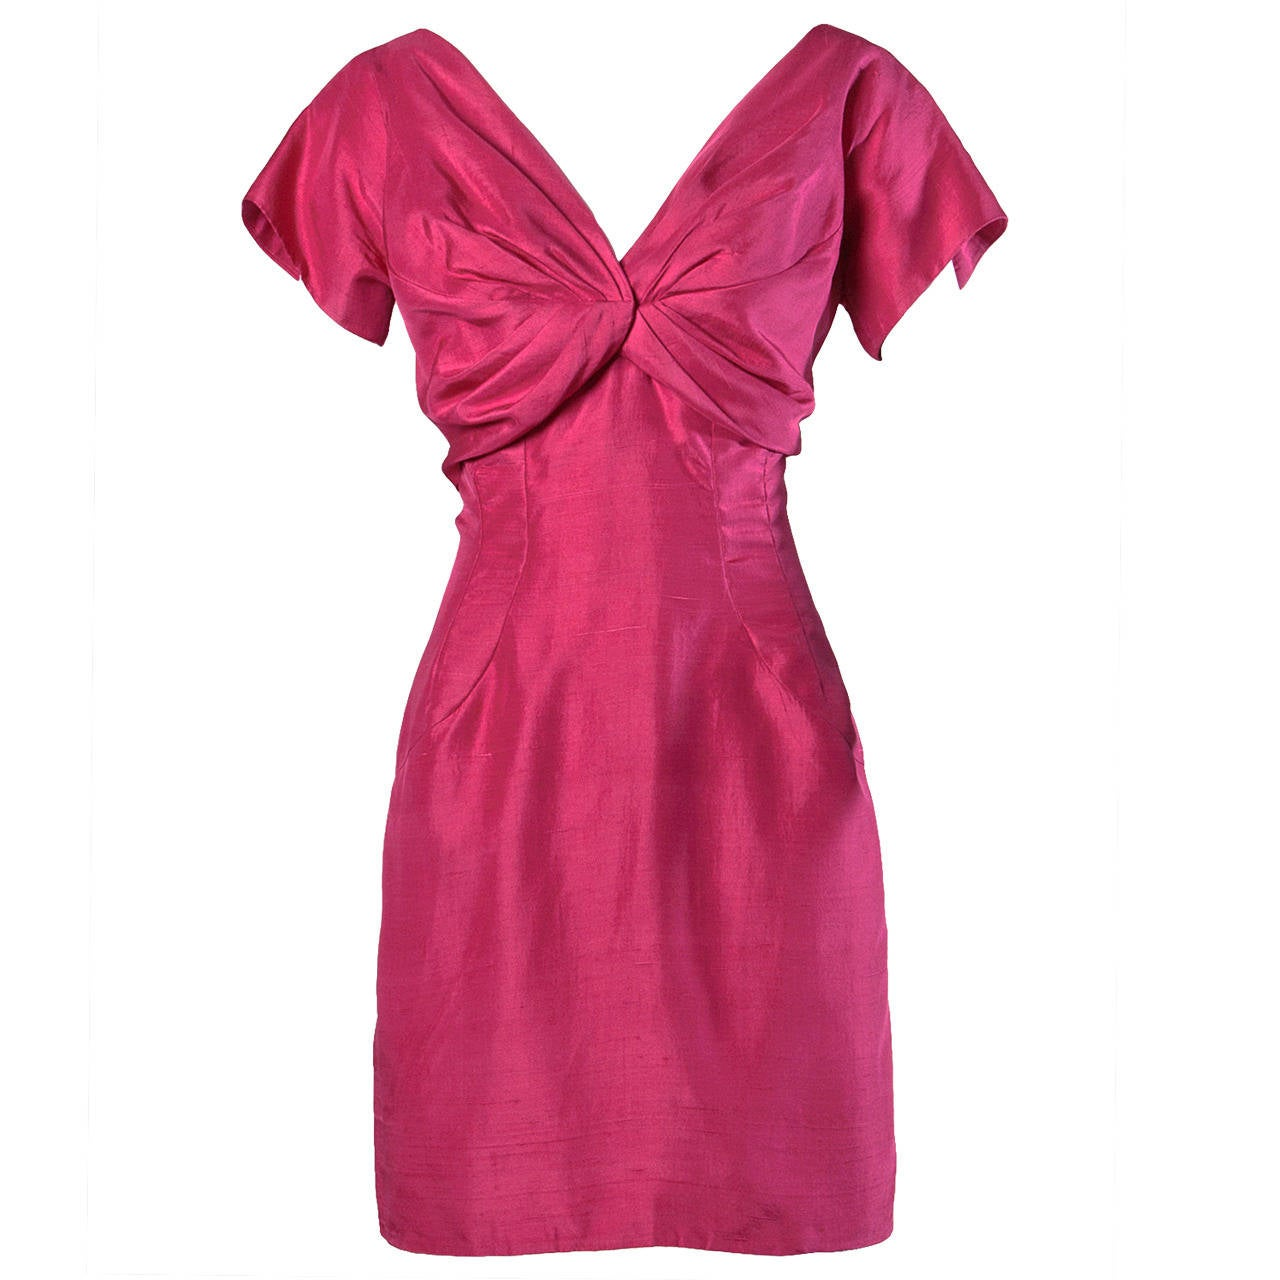 Sydney North Vintage 1960s Fuchsia Silk Cocktail Dress For Sale